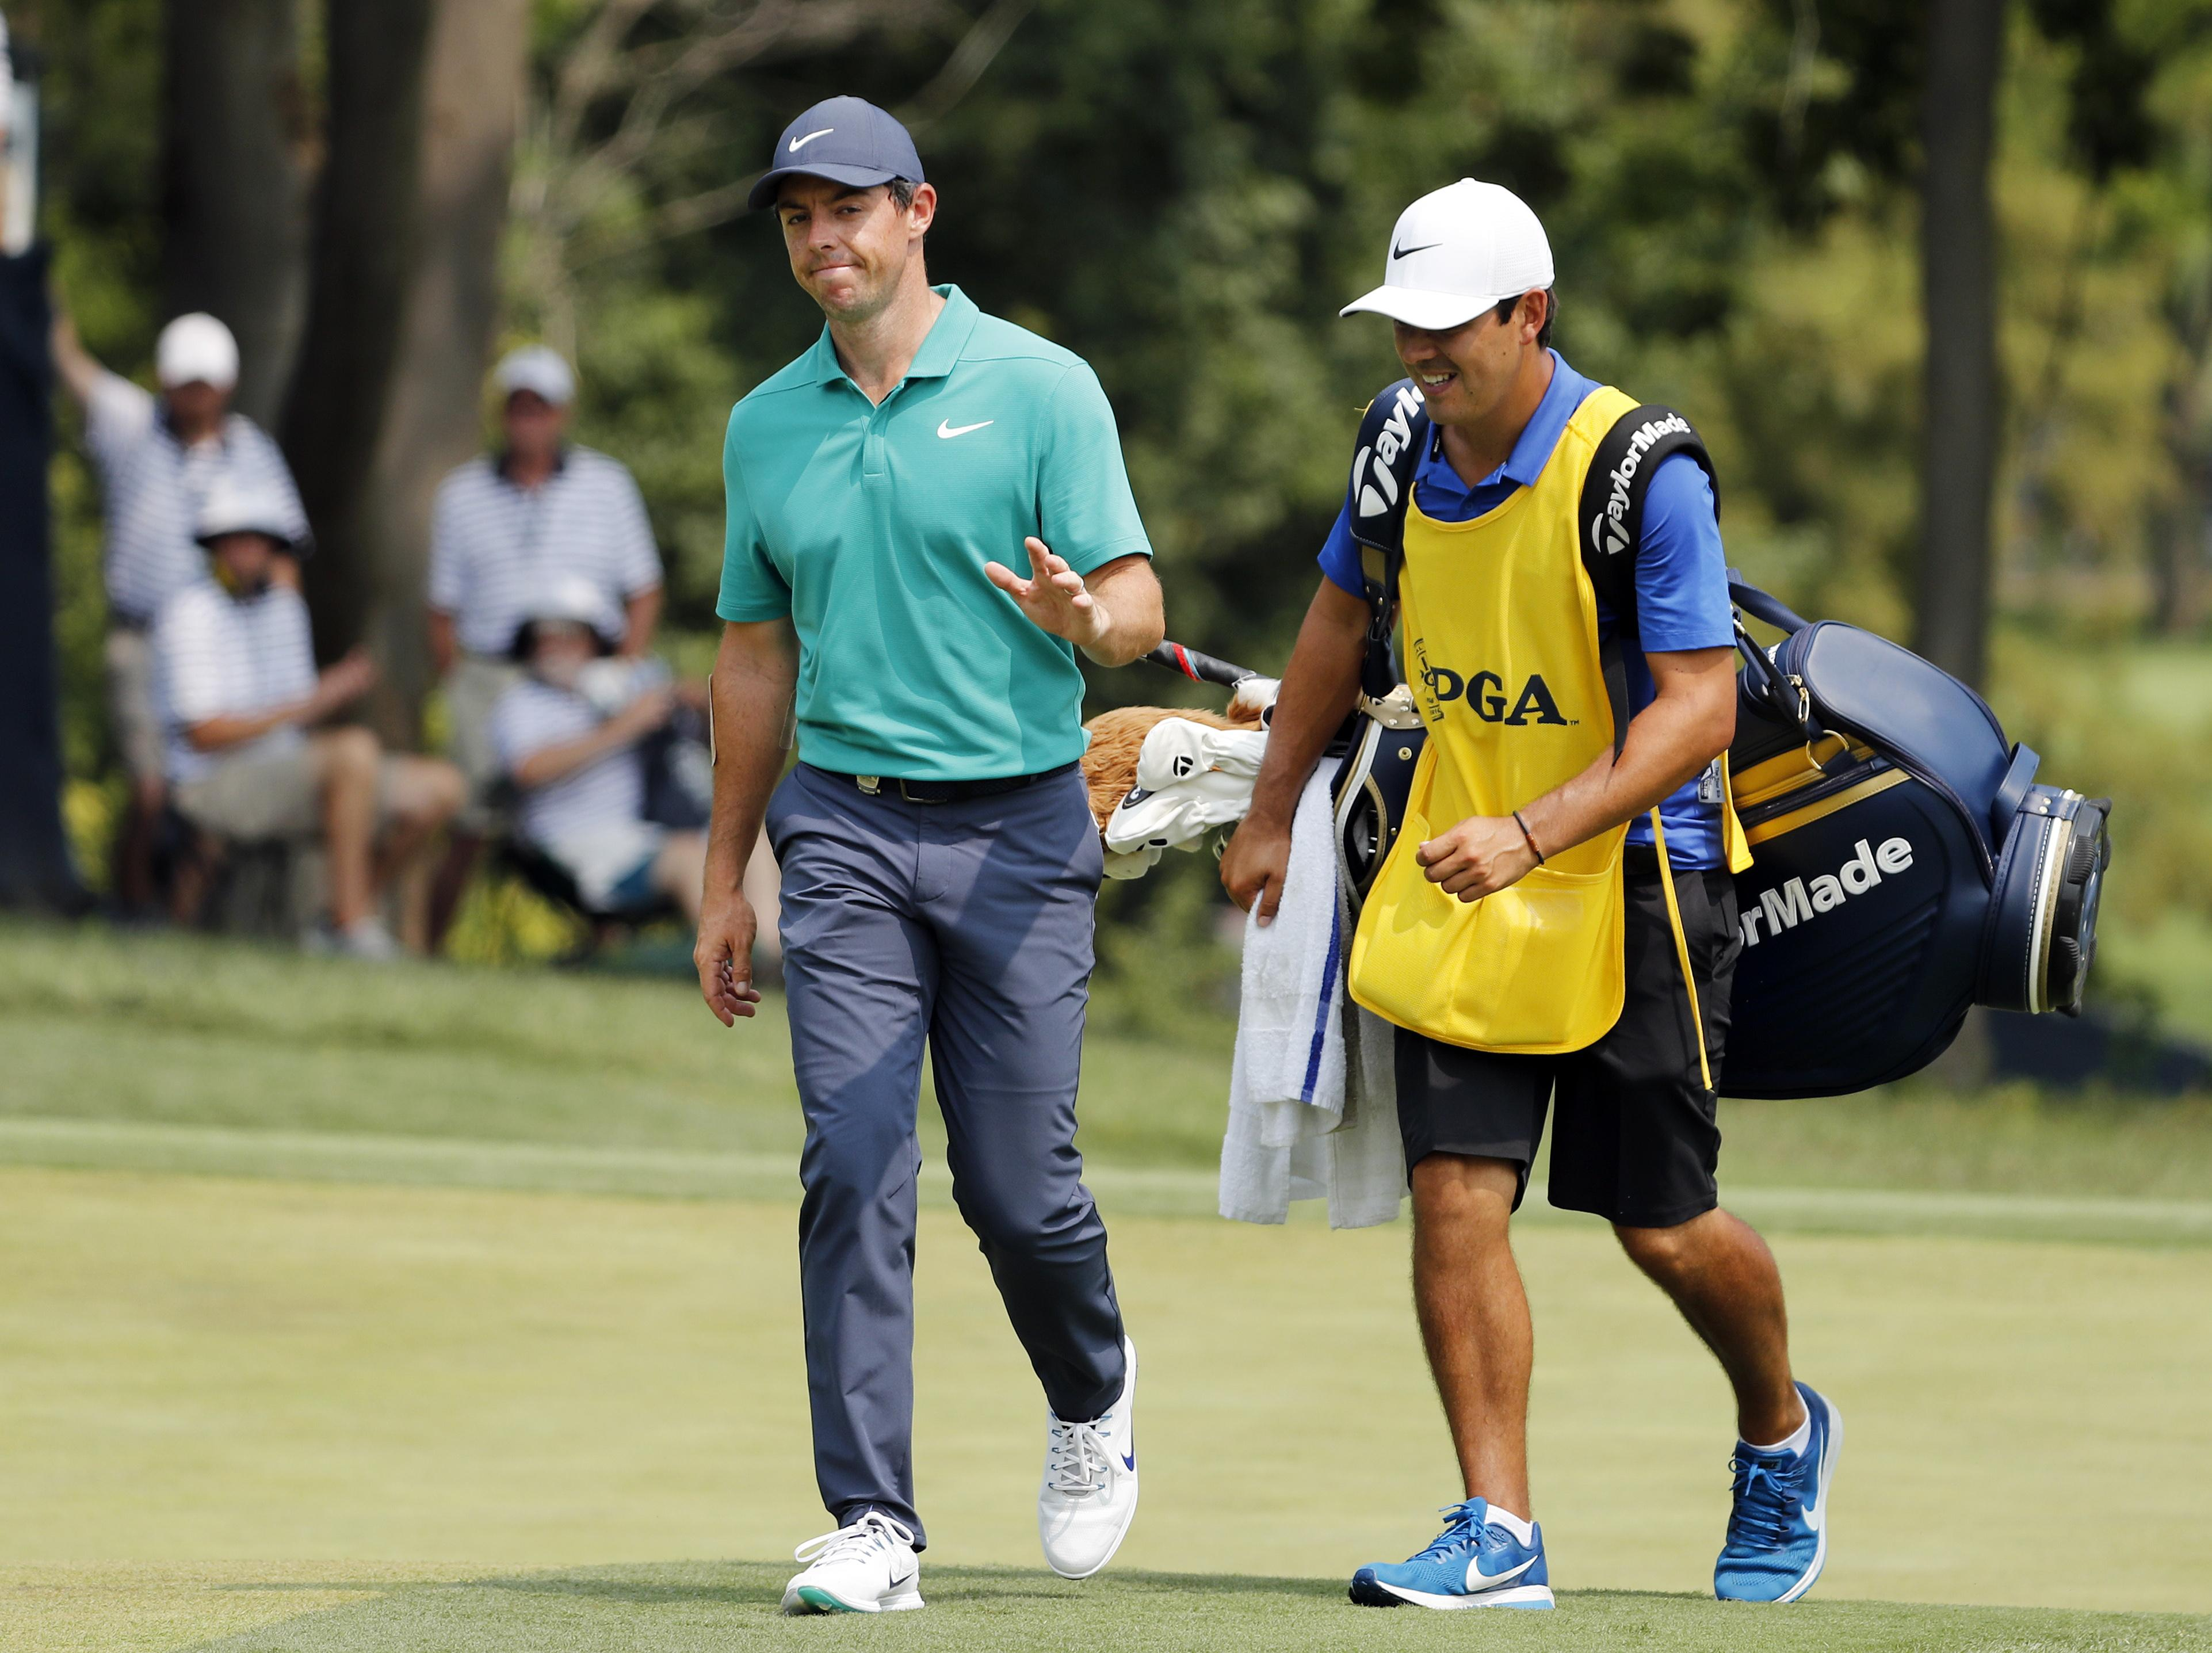 McIlroy will head to Augusta next year once again looking to complete the Grand Slam